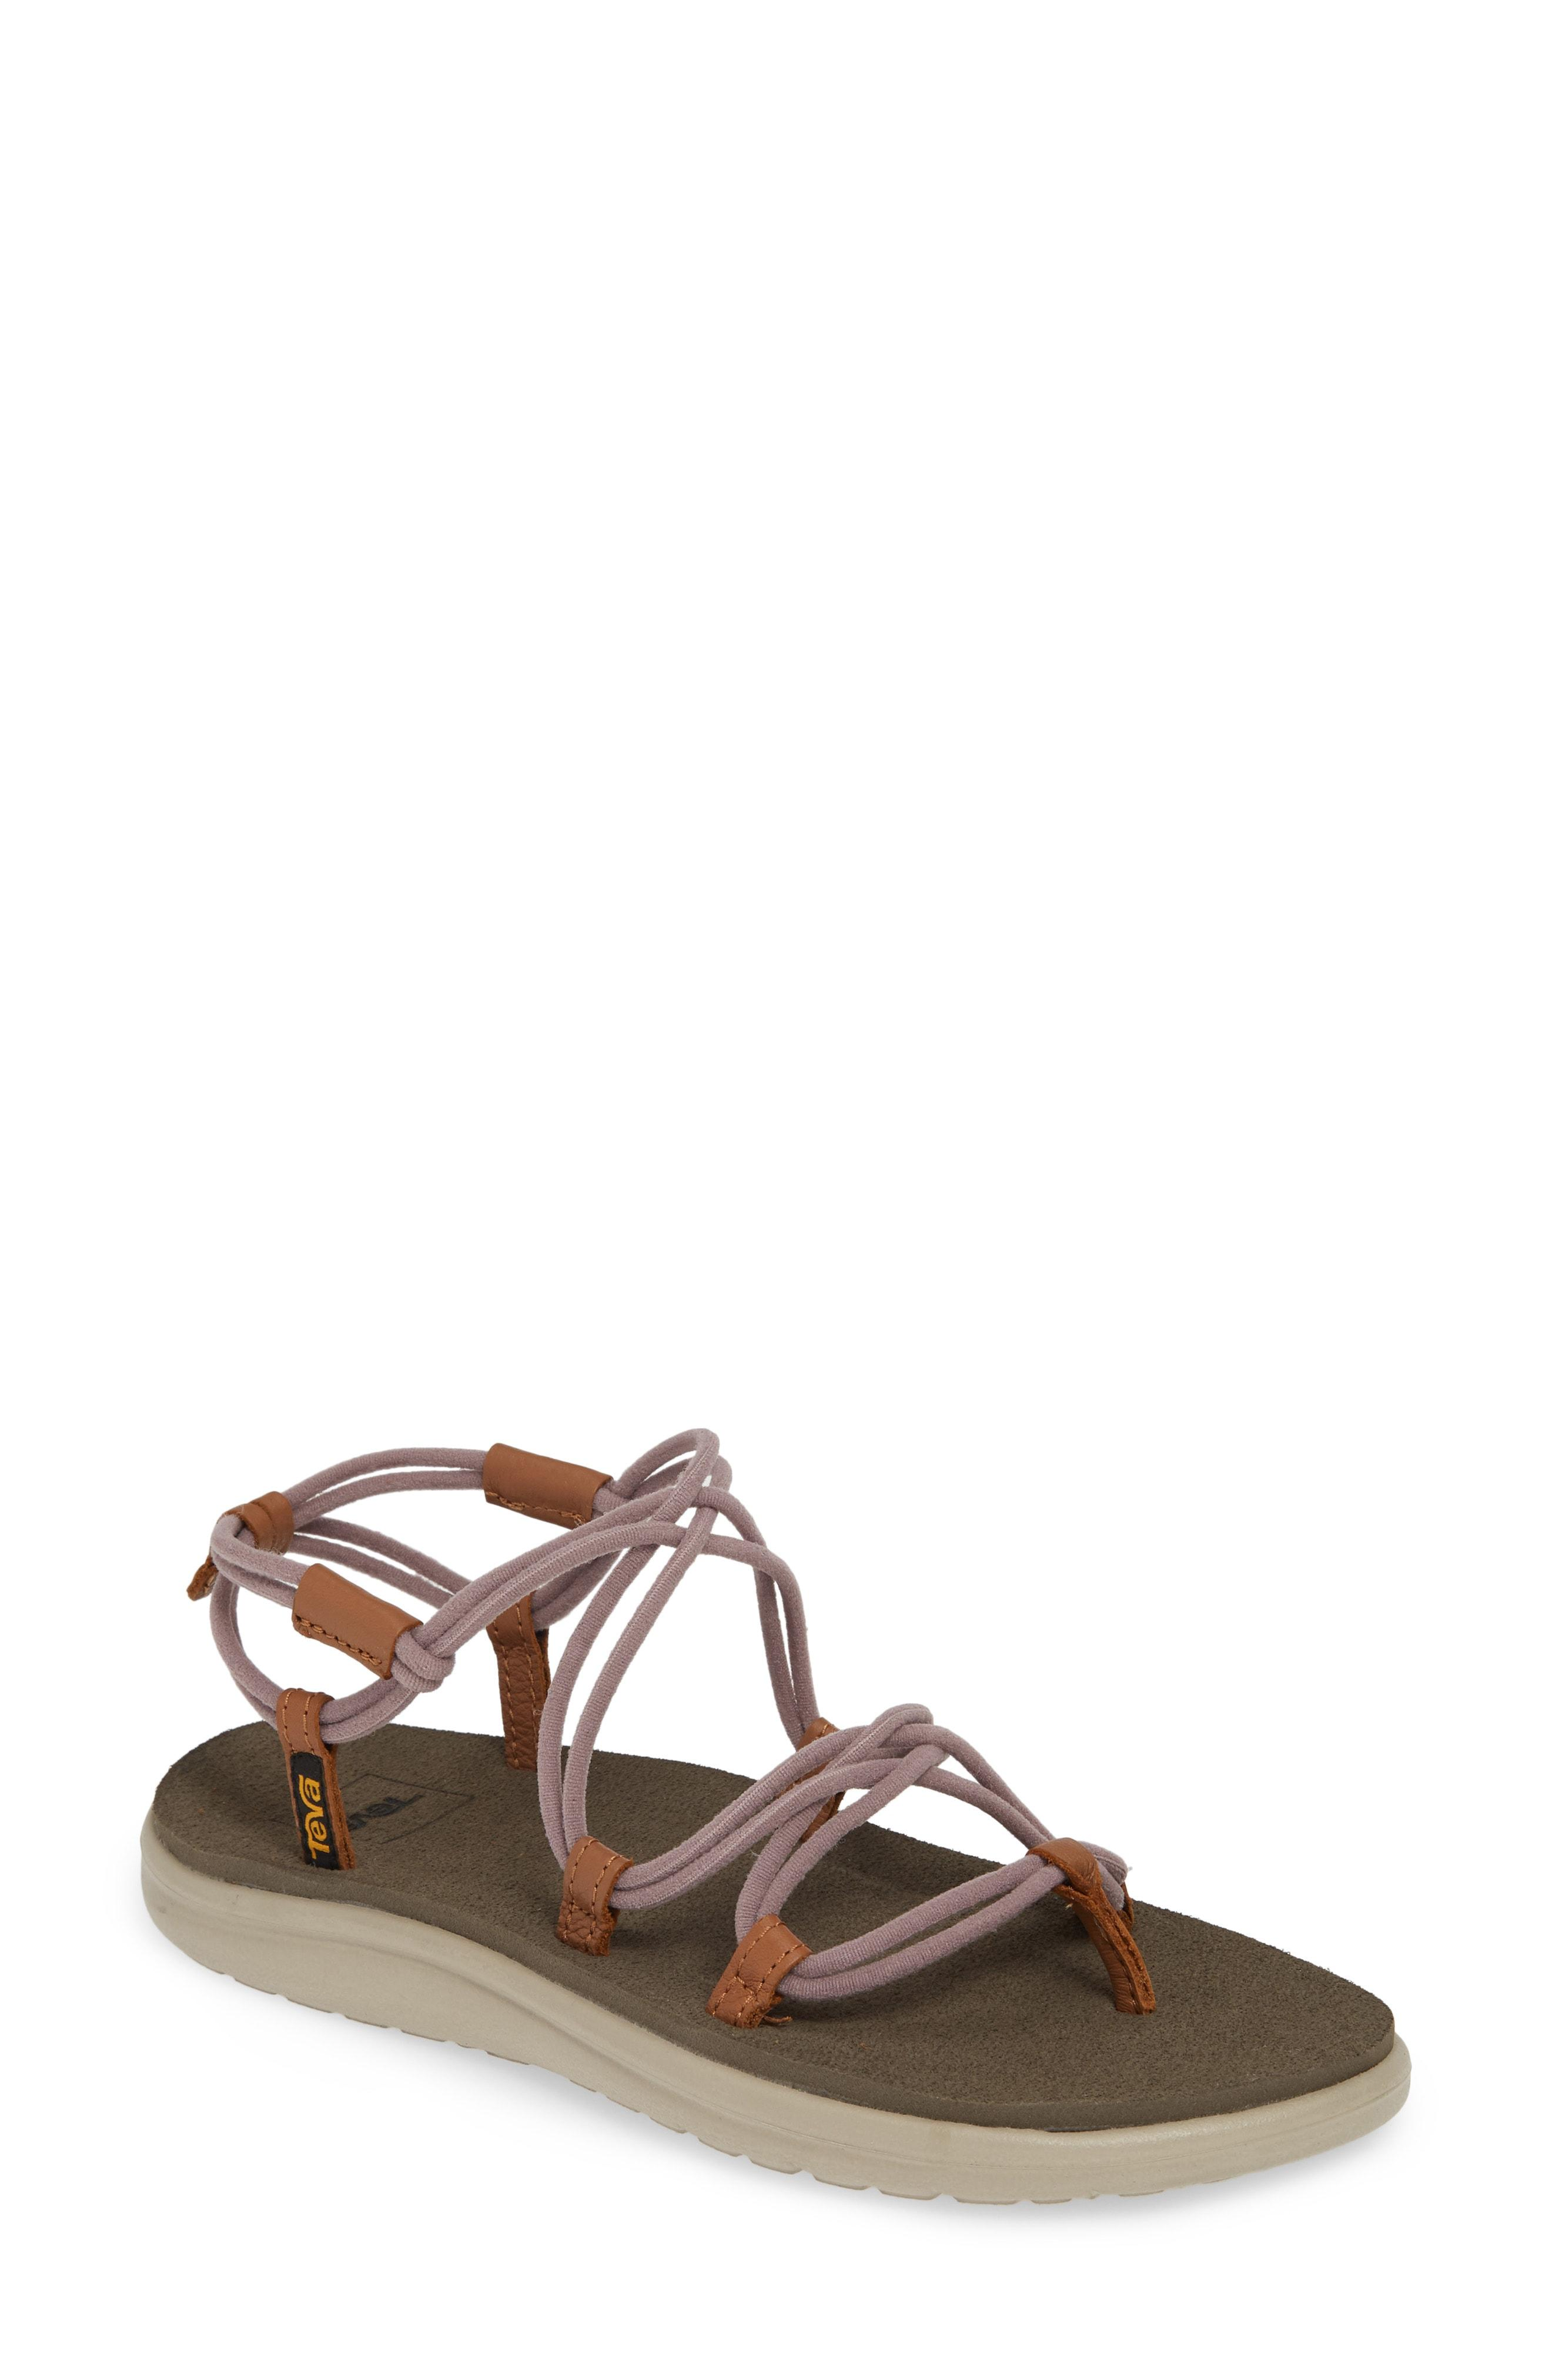 bc39a5f47d0 Lyst - Teva W Voya Infinity Flip-flop in Brown - Save 3%